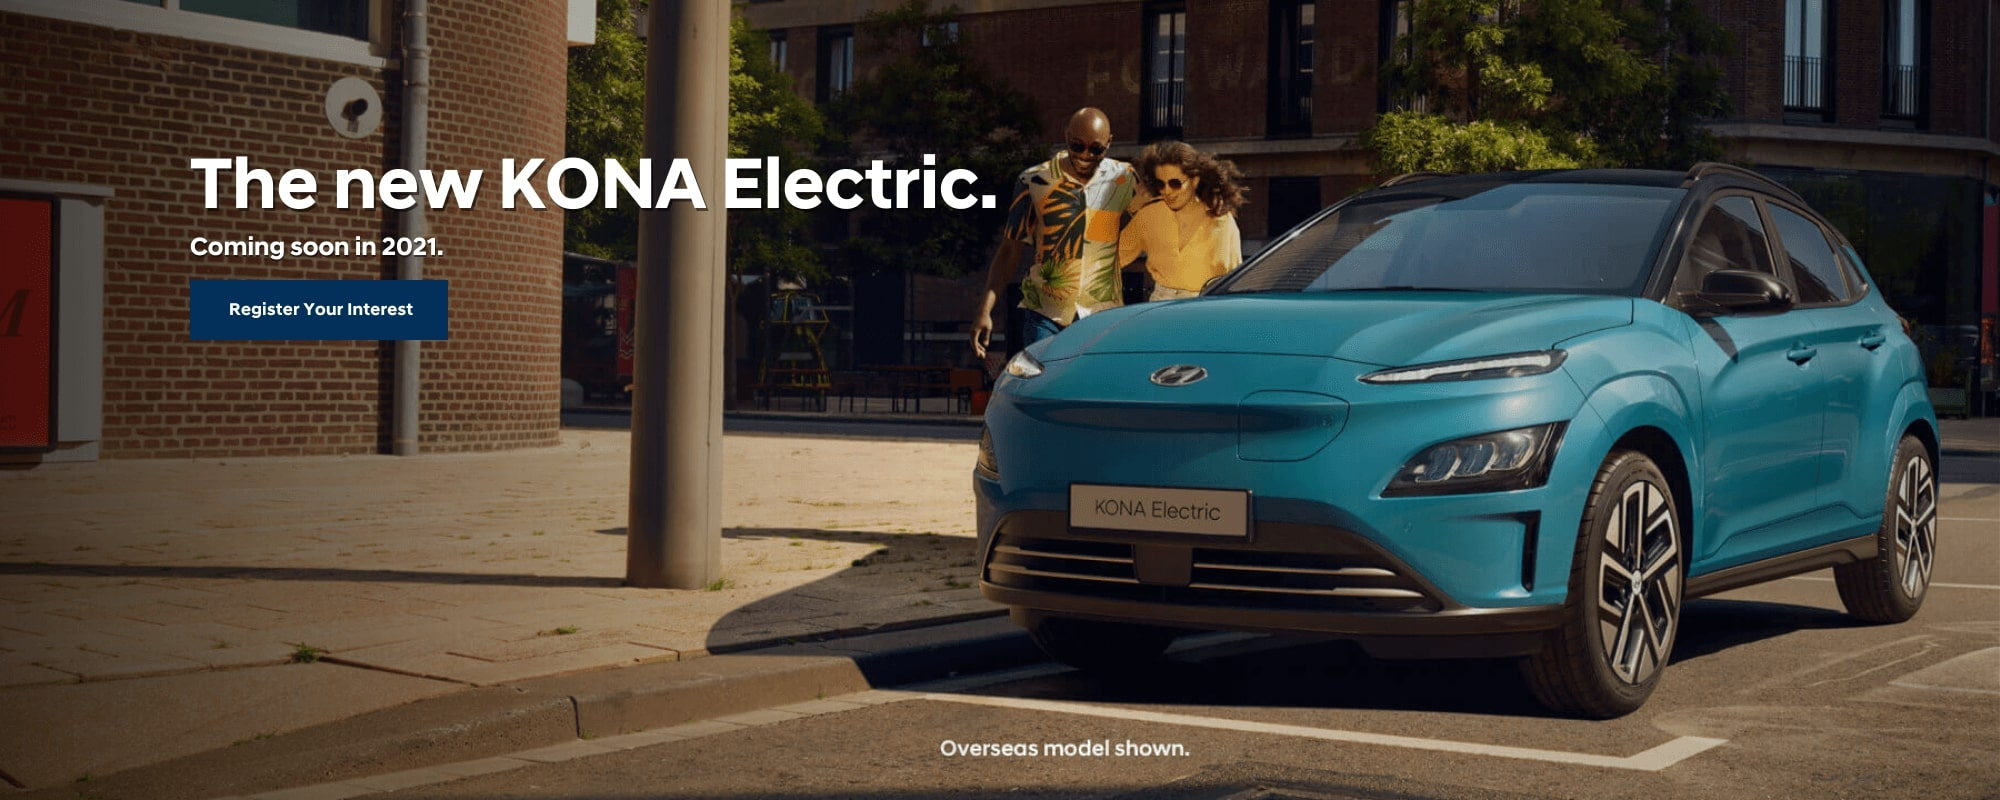 Coming Soon: Hyundai KONA EV. Zero Emissions. Powerful Performance. Electrifying Design.